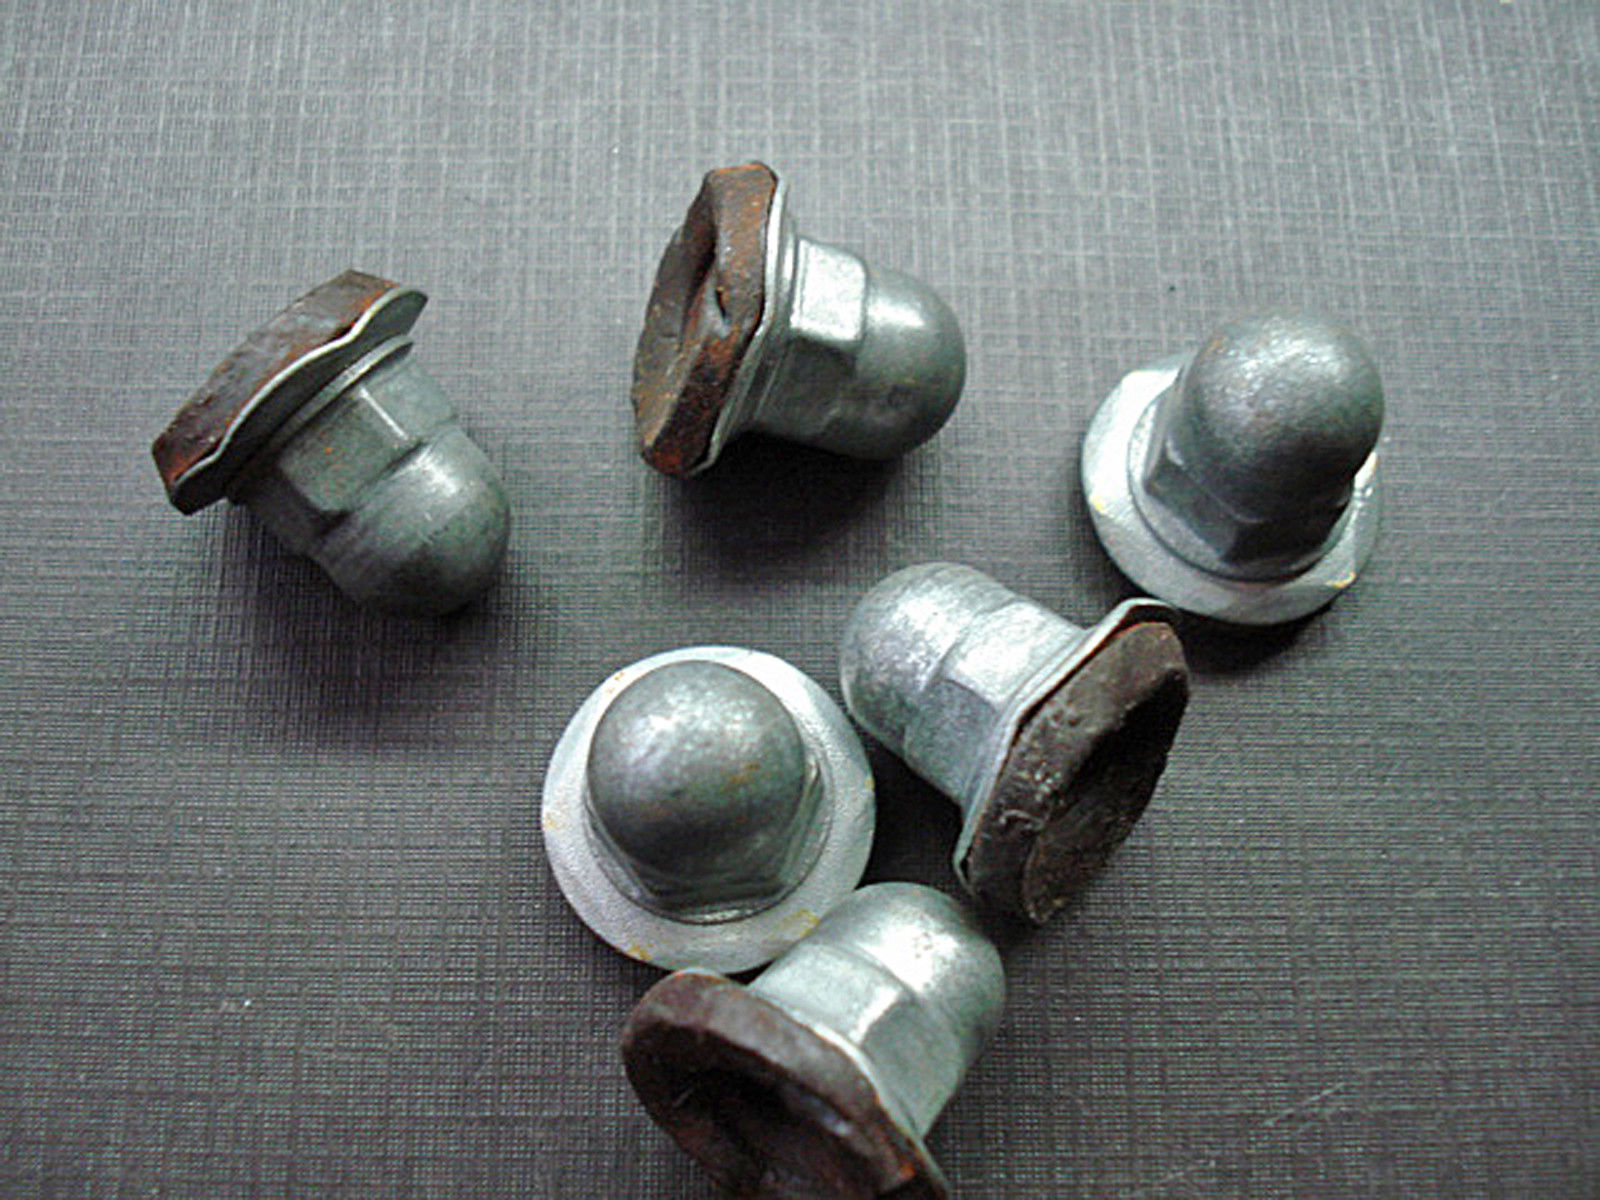 6 pcs Mopar 1/4-20 zinc plated acorn PAL nuts with mastic sealer NOS